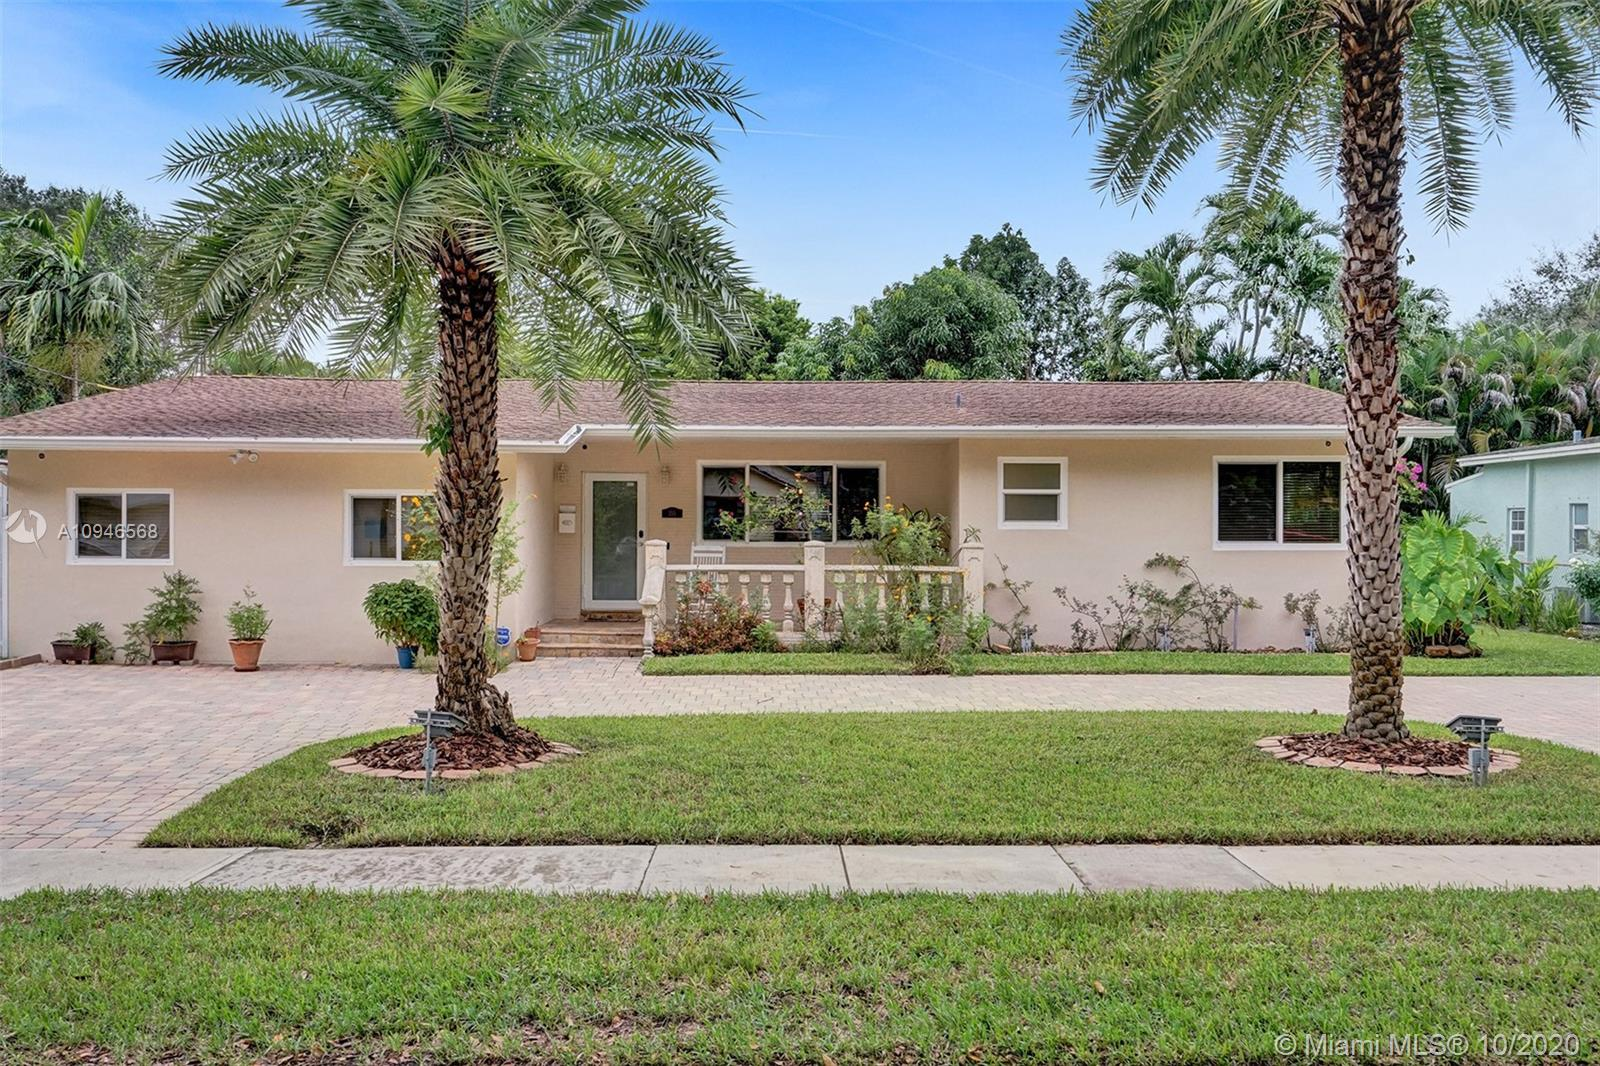 Details for 355 127th St, North Miami, FL 33161